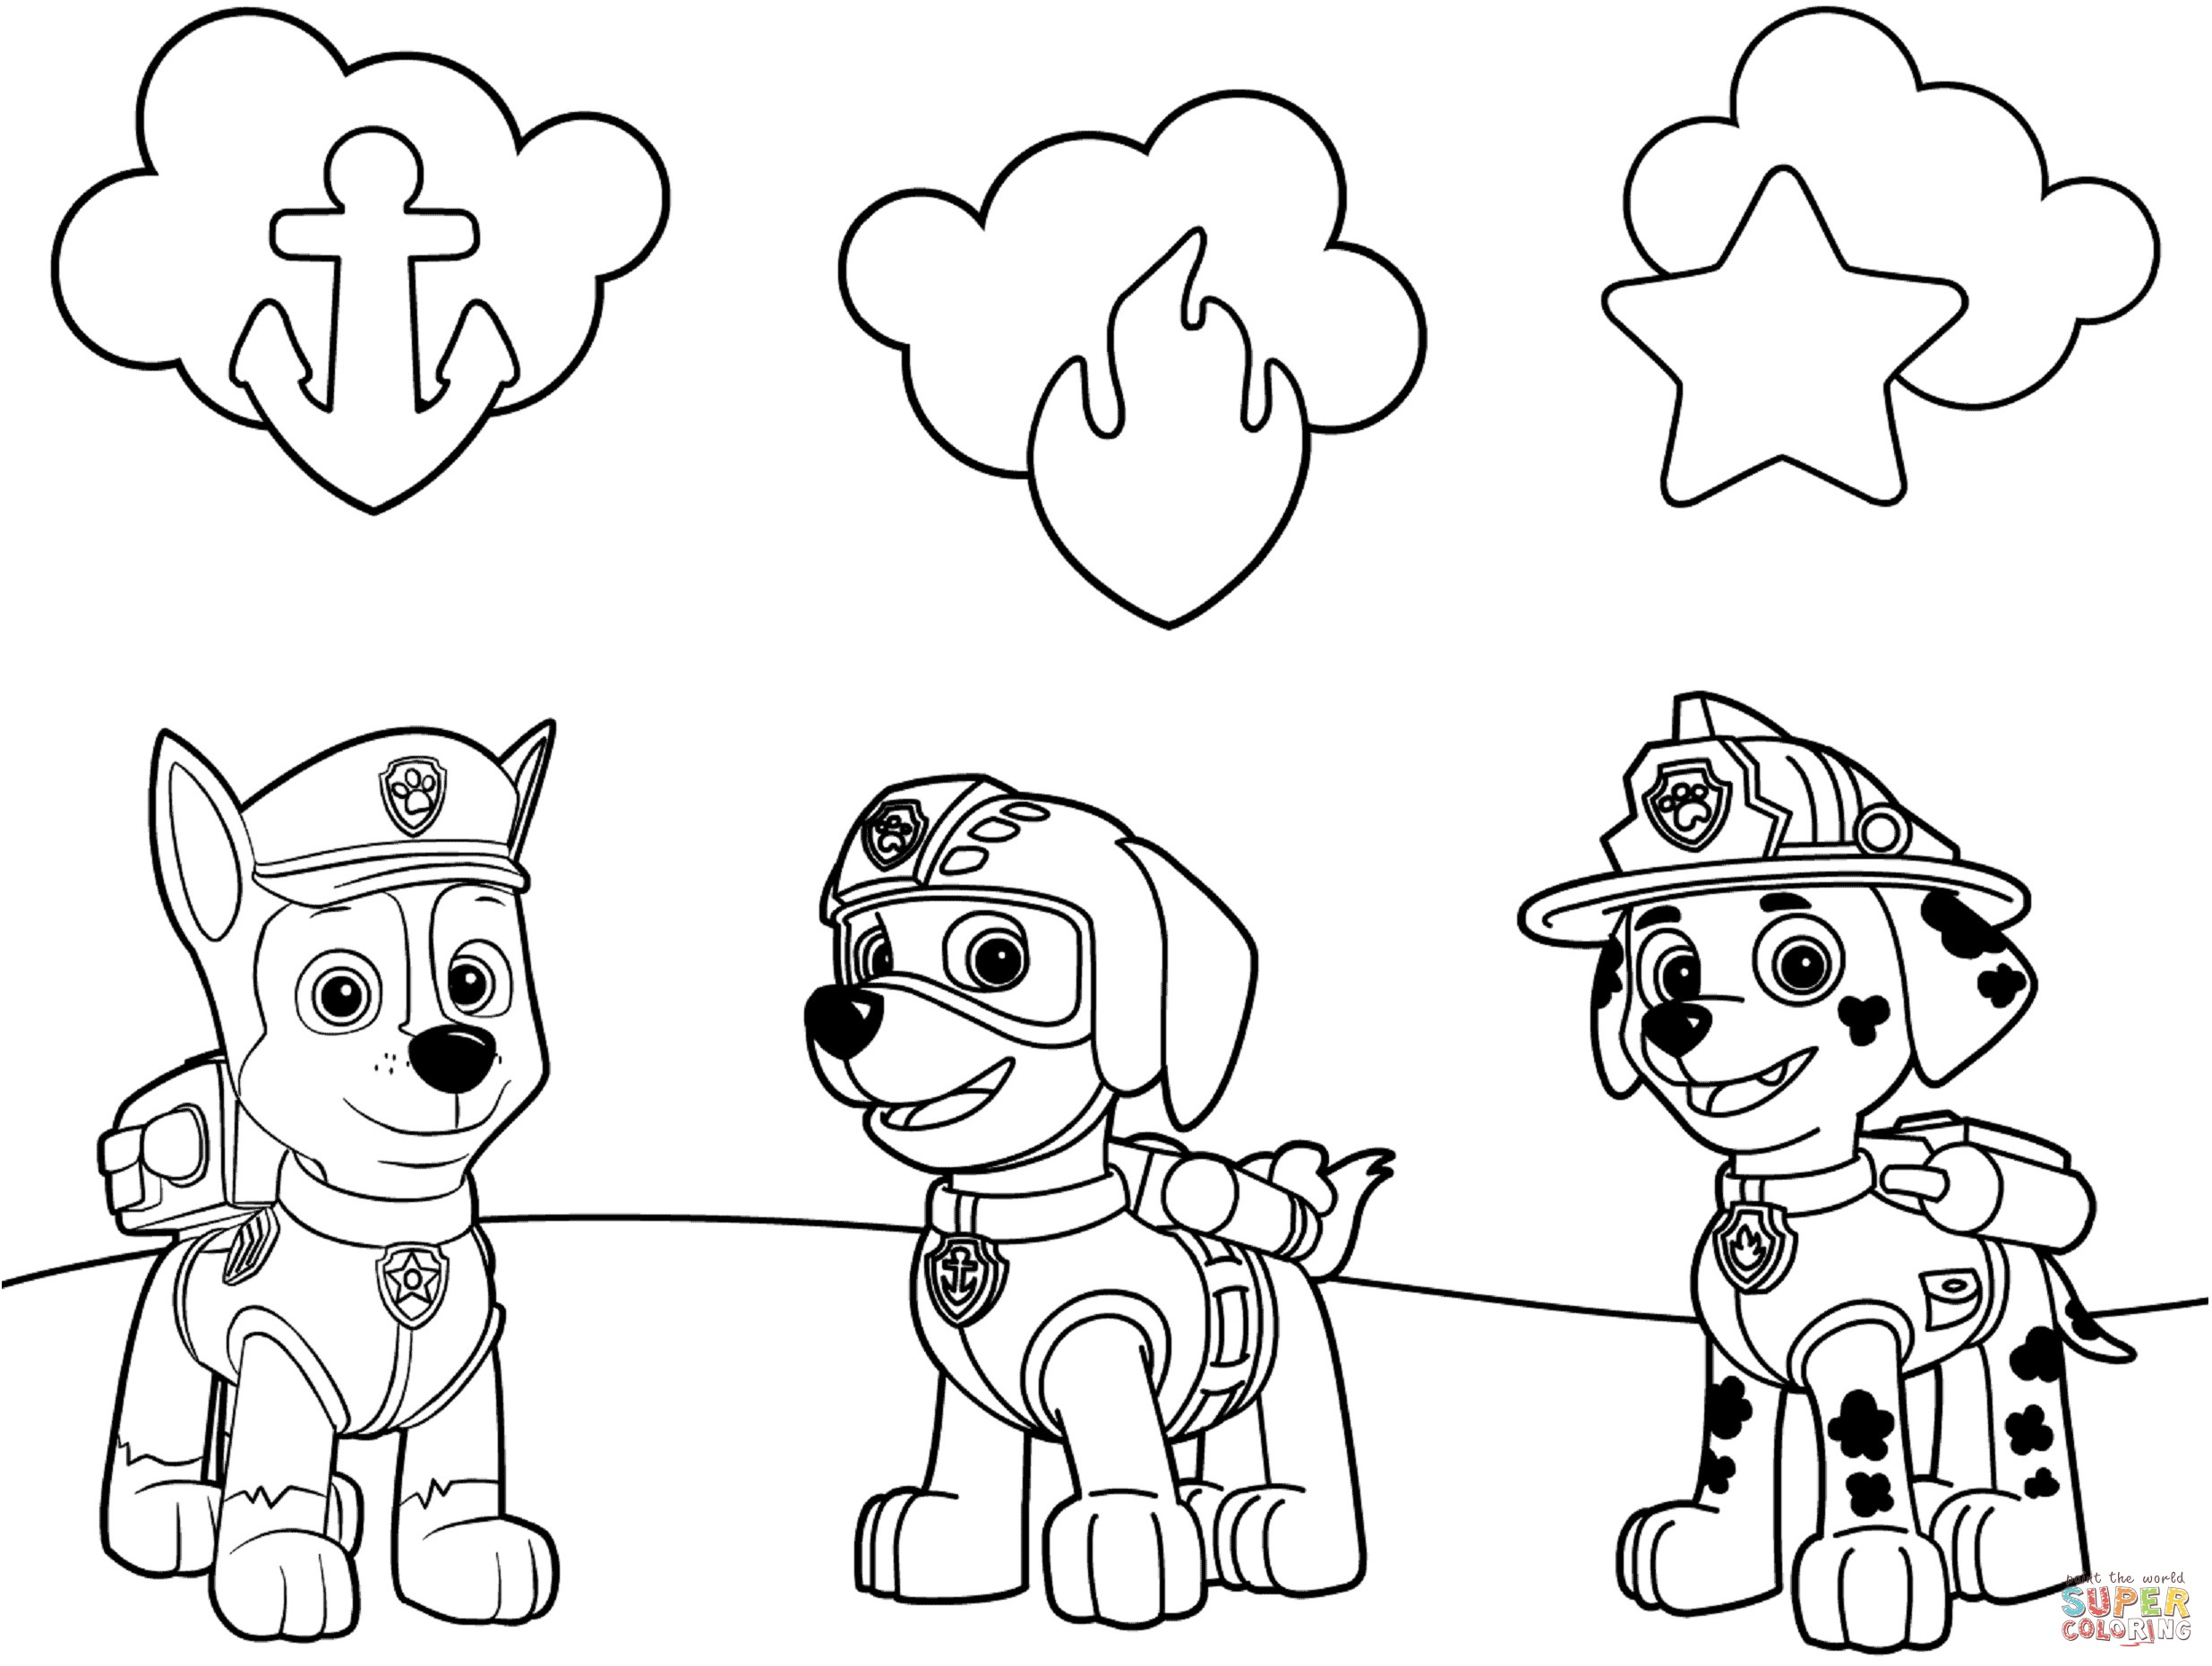 2470x1860 Cartoon Puppies Coloring Pages New Paw Patrol Coloring Pages